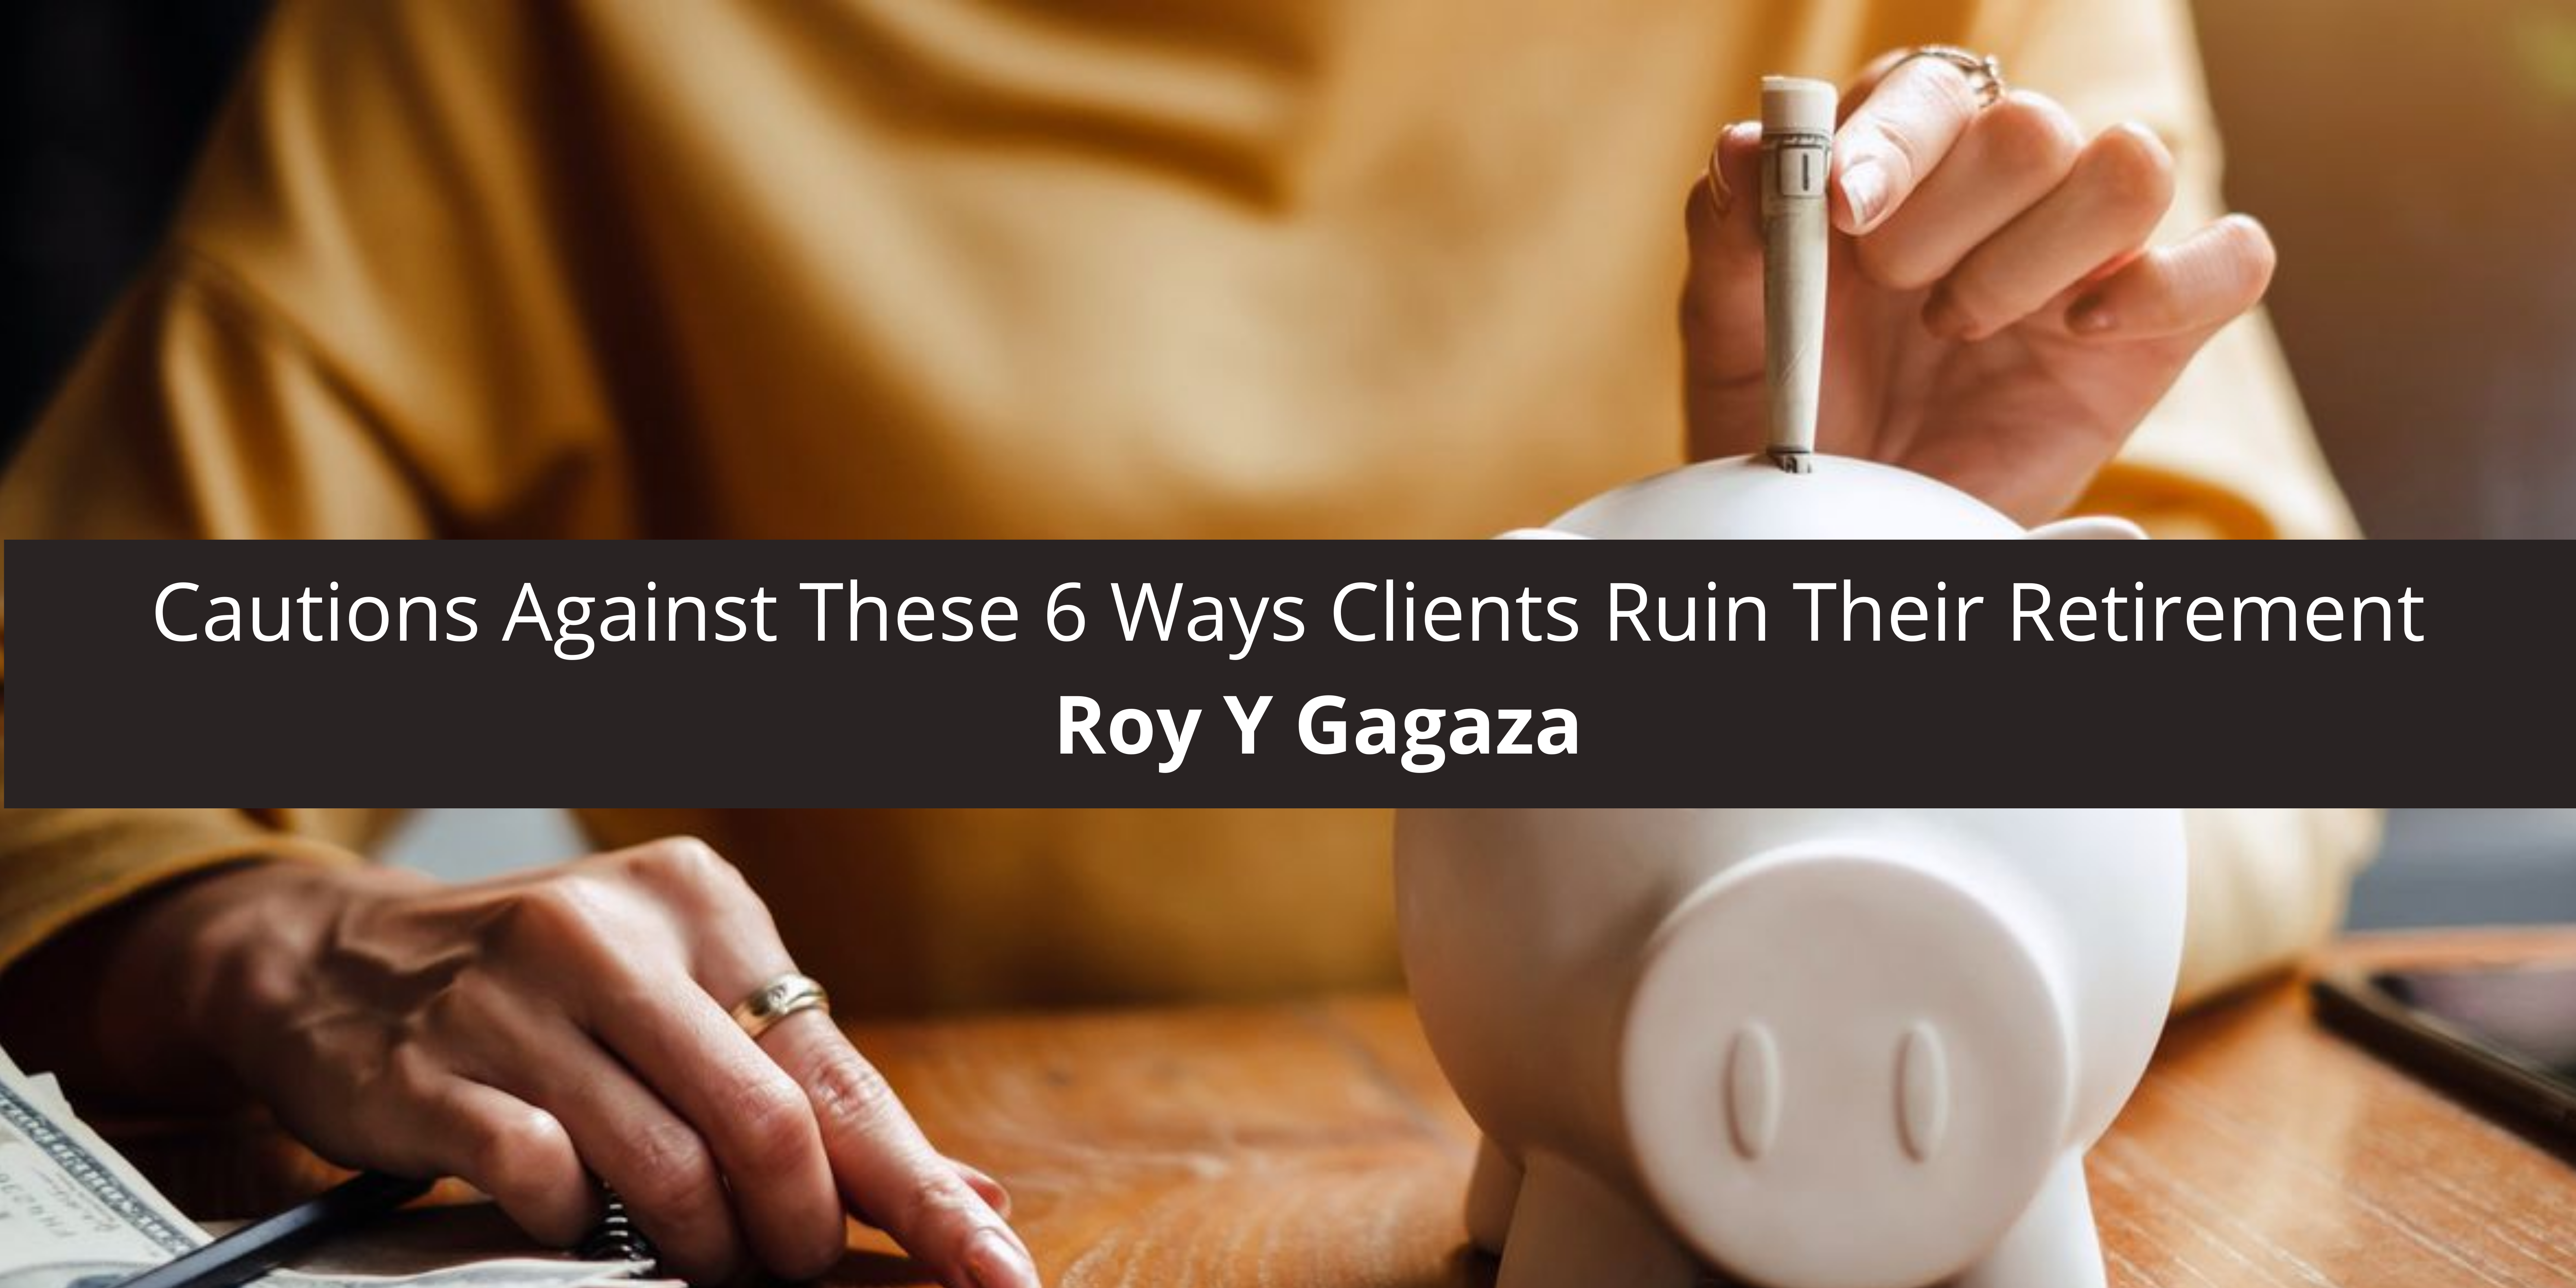 Roy Y. Gagaza Cautions Against These 6 Ways Clients Ruin Retirement